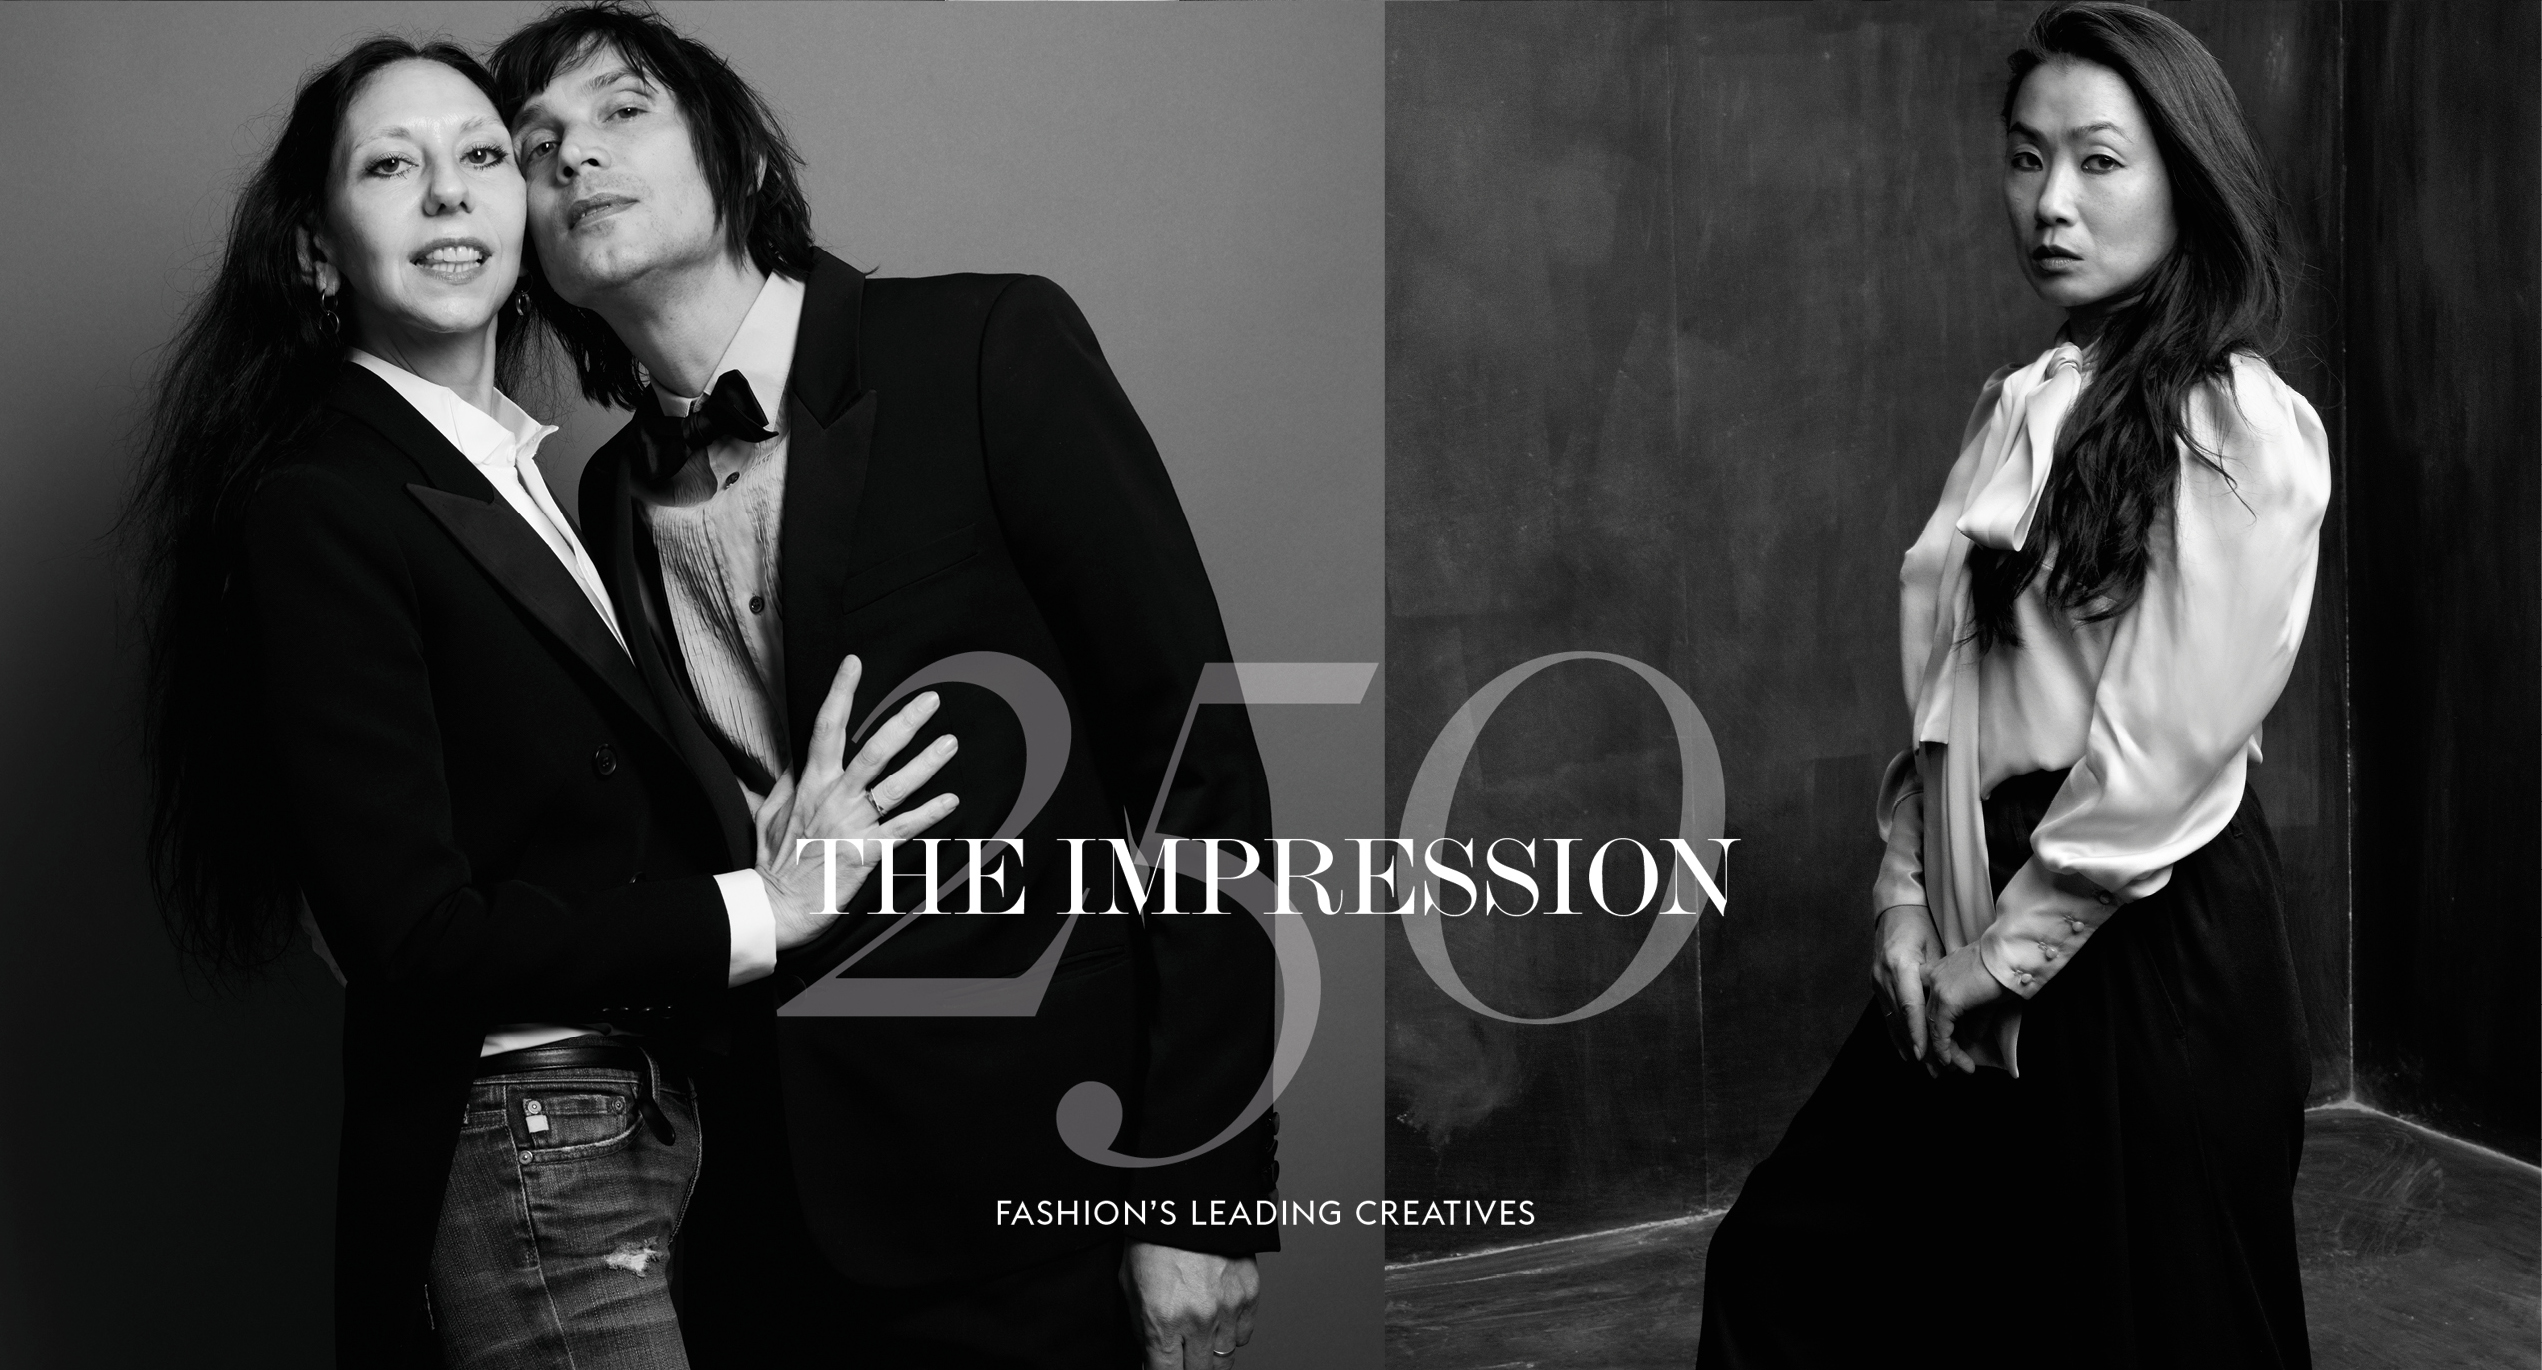 The Impression 250 Magazine celebrating the Top 250 Fashion Creatives today